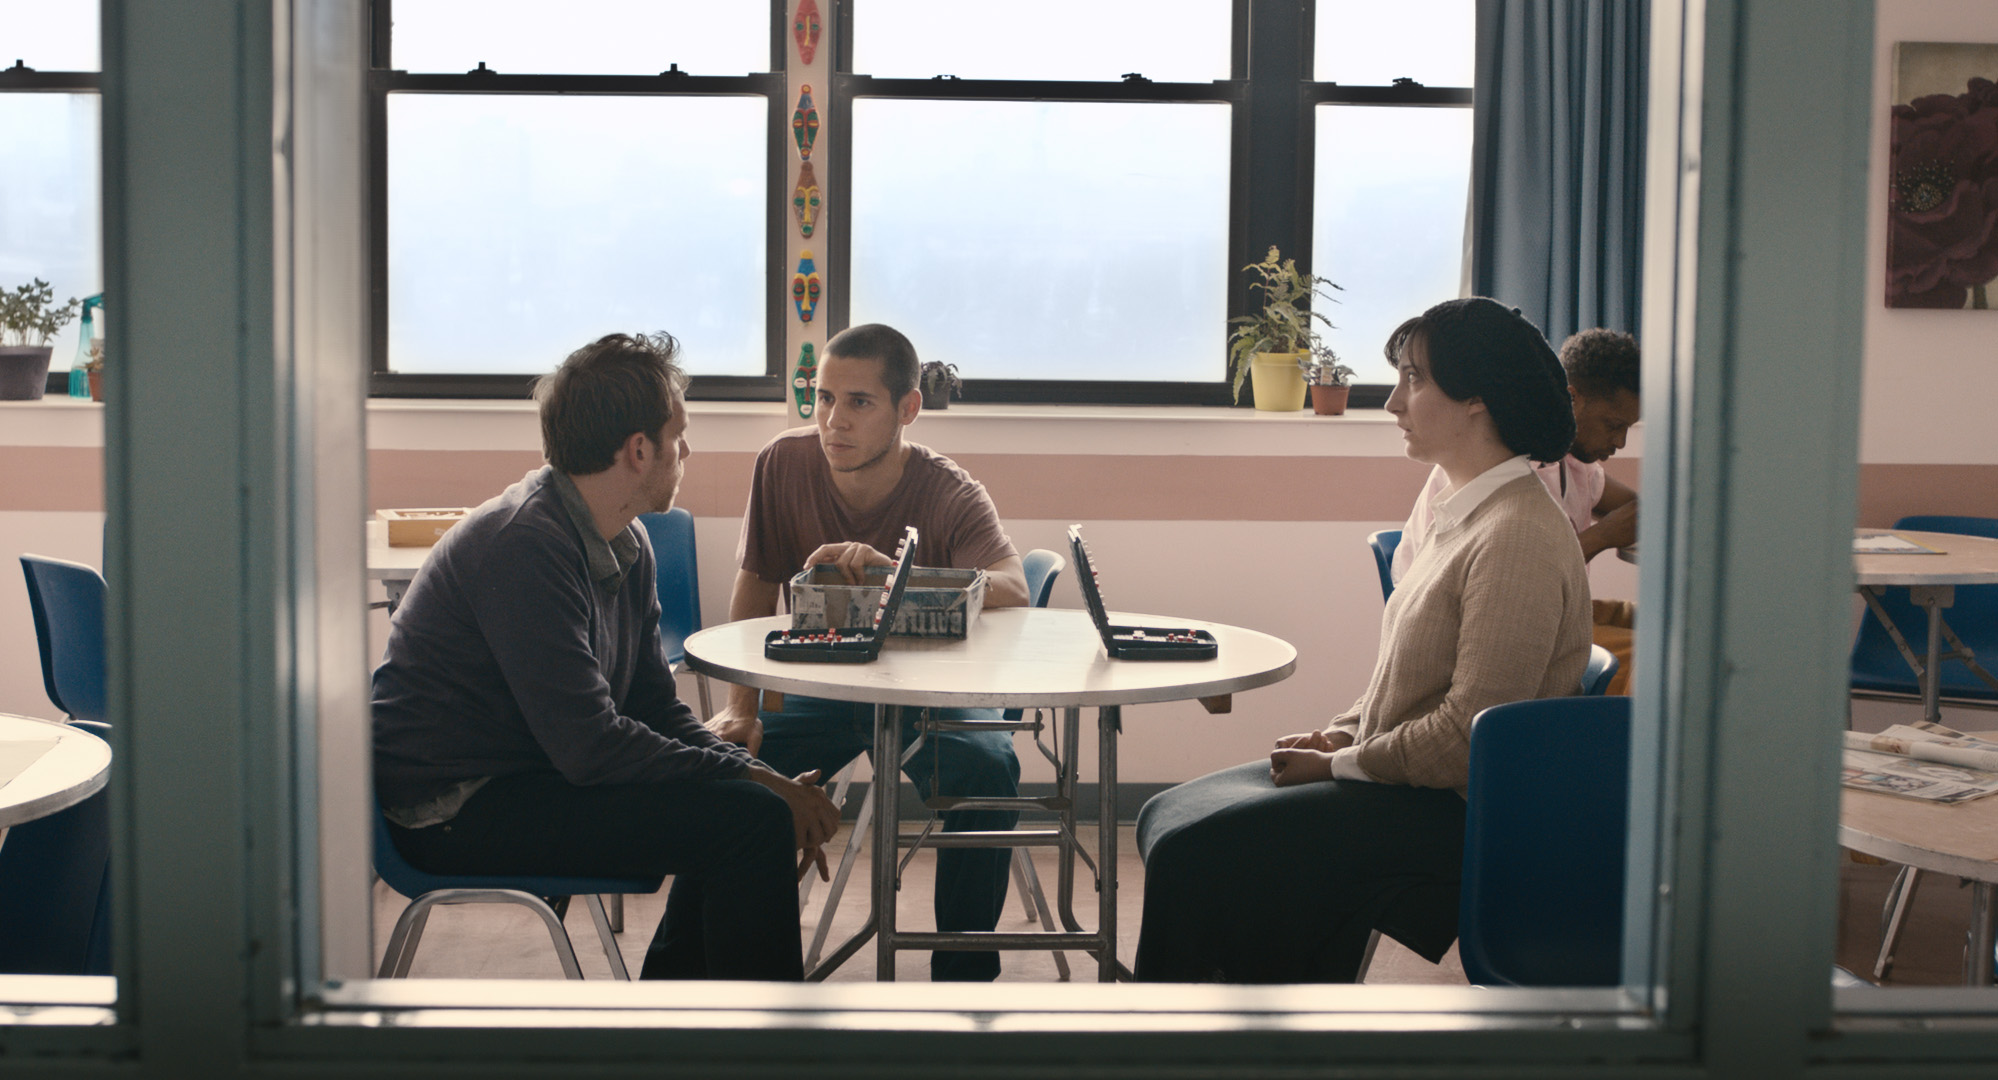 Adherence - Daniel interrupts a game of Battleship between Charlie and Maddy in the ward's dayroom.